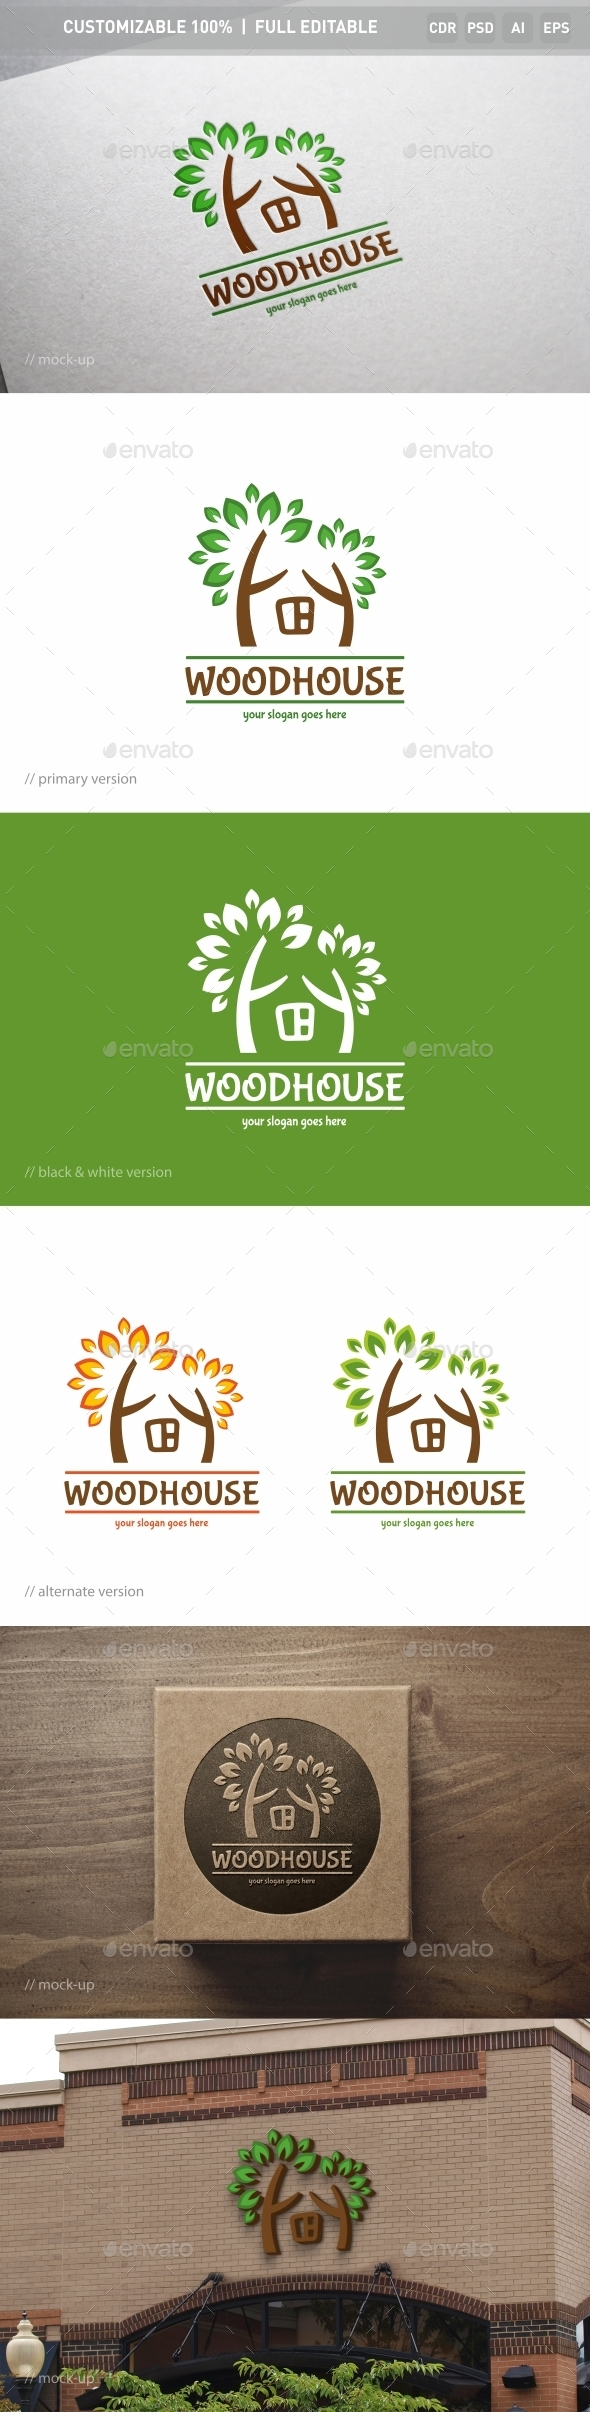 Woodhouse Logo Template - Objects Logo Templates